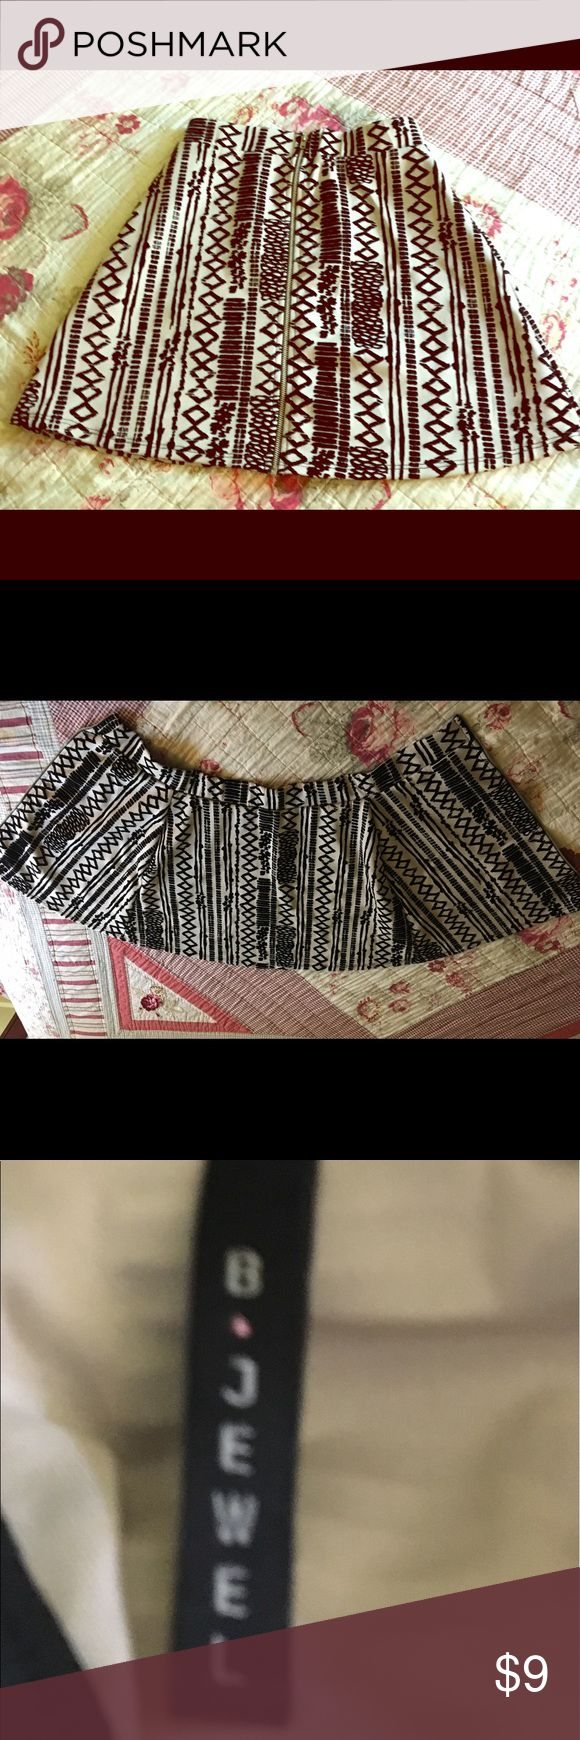 B Jewel Aztec Print Skirt.⭐️⭐️ B Jewel Aztec Print Skirt. Beige and black - zipper completely opens. See pic #2. Very good pre-owned condition. Black detail feels like felt, very soft. B Jewel Skirts Circle & Skater